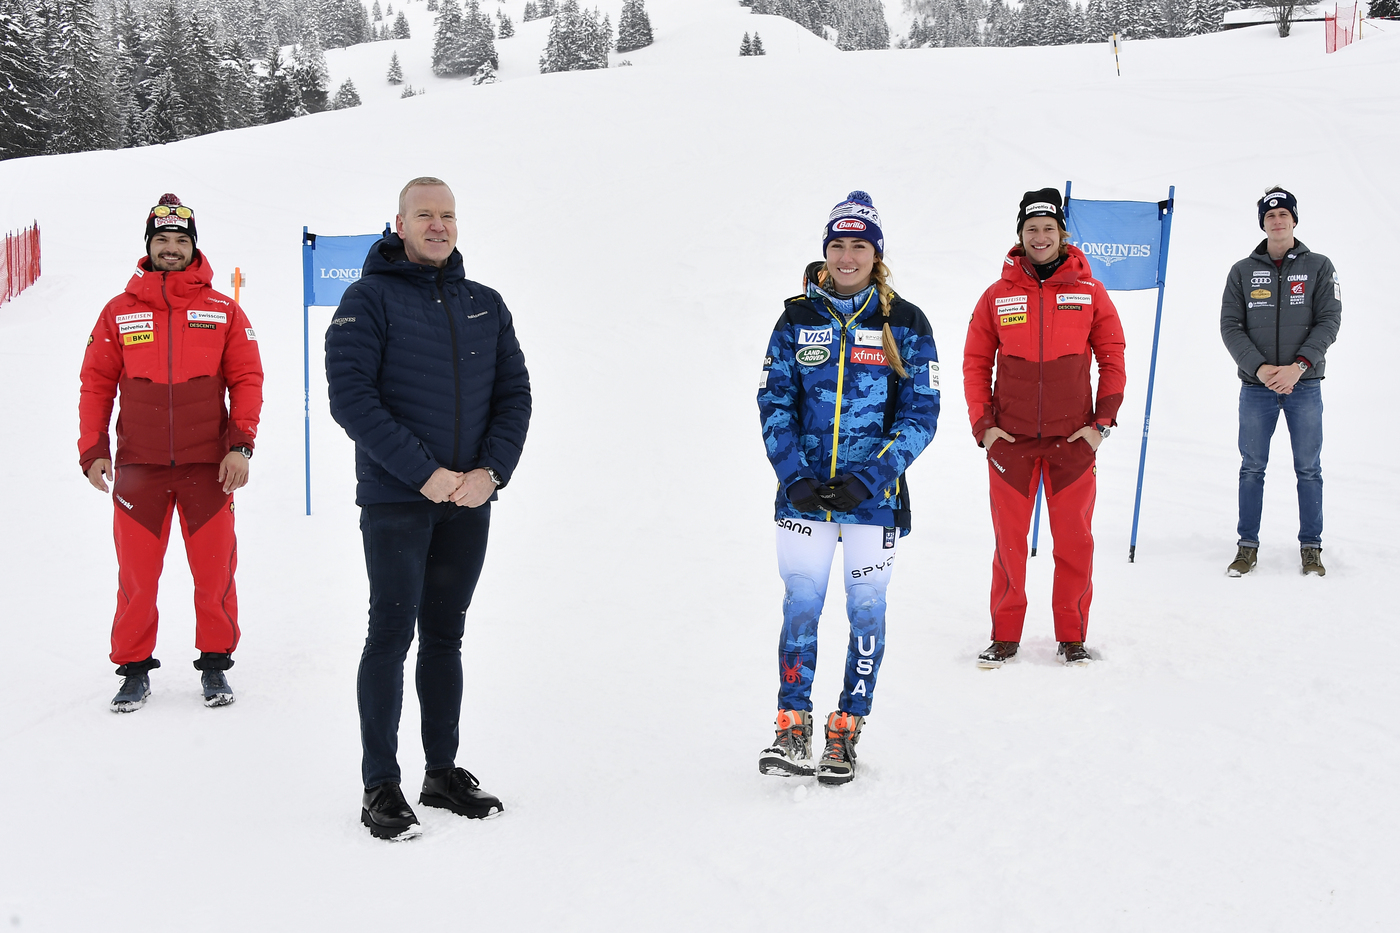 Longines Alpine Skiing Event: Lenzerheide marks the end of a prolific season for Longines' athletes 1